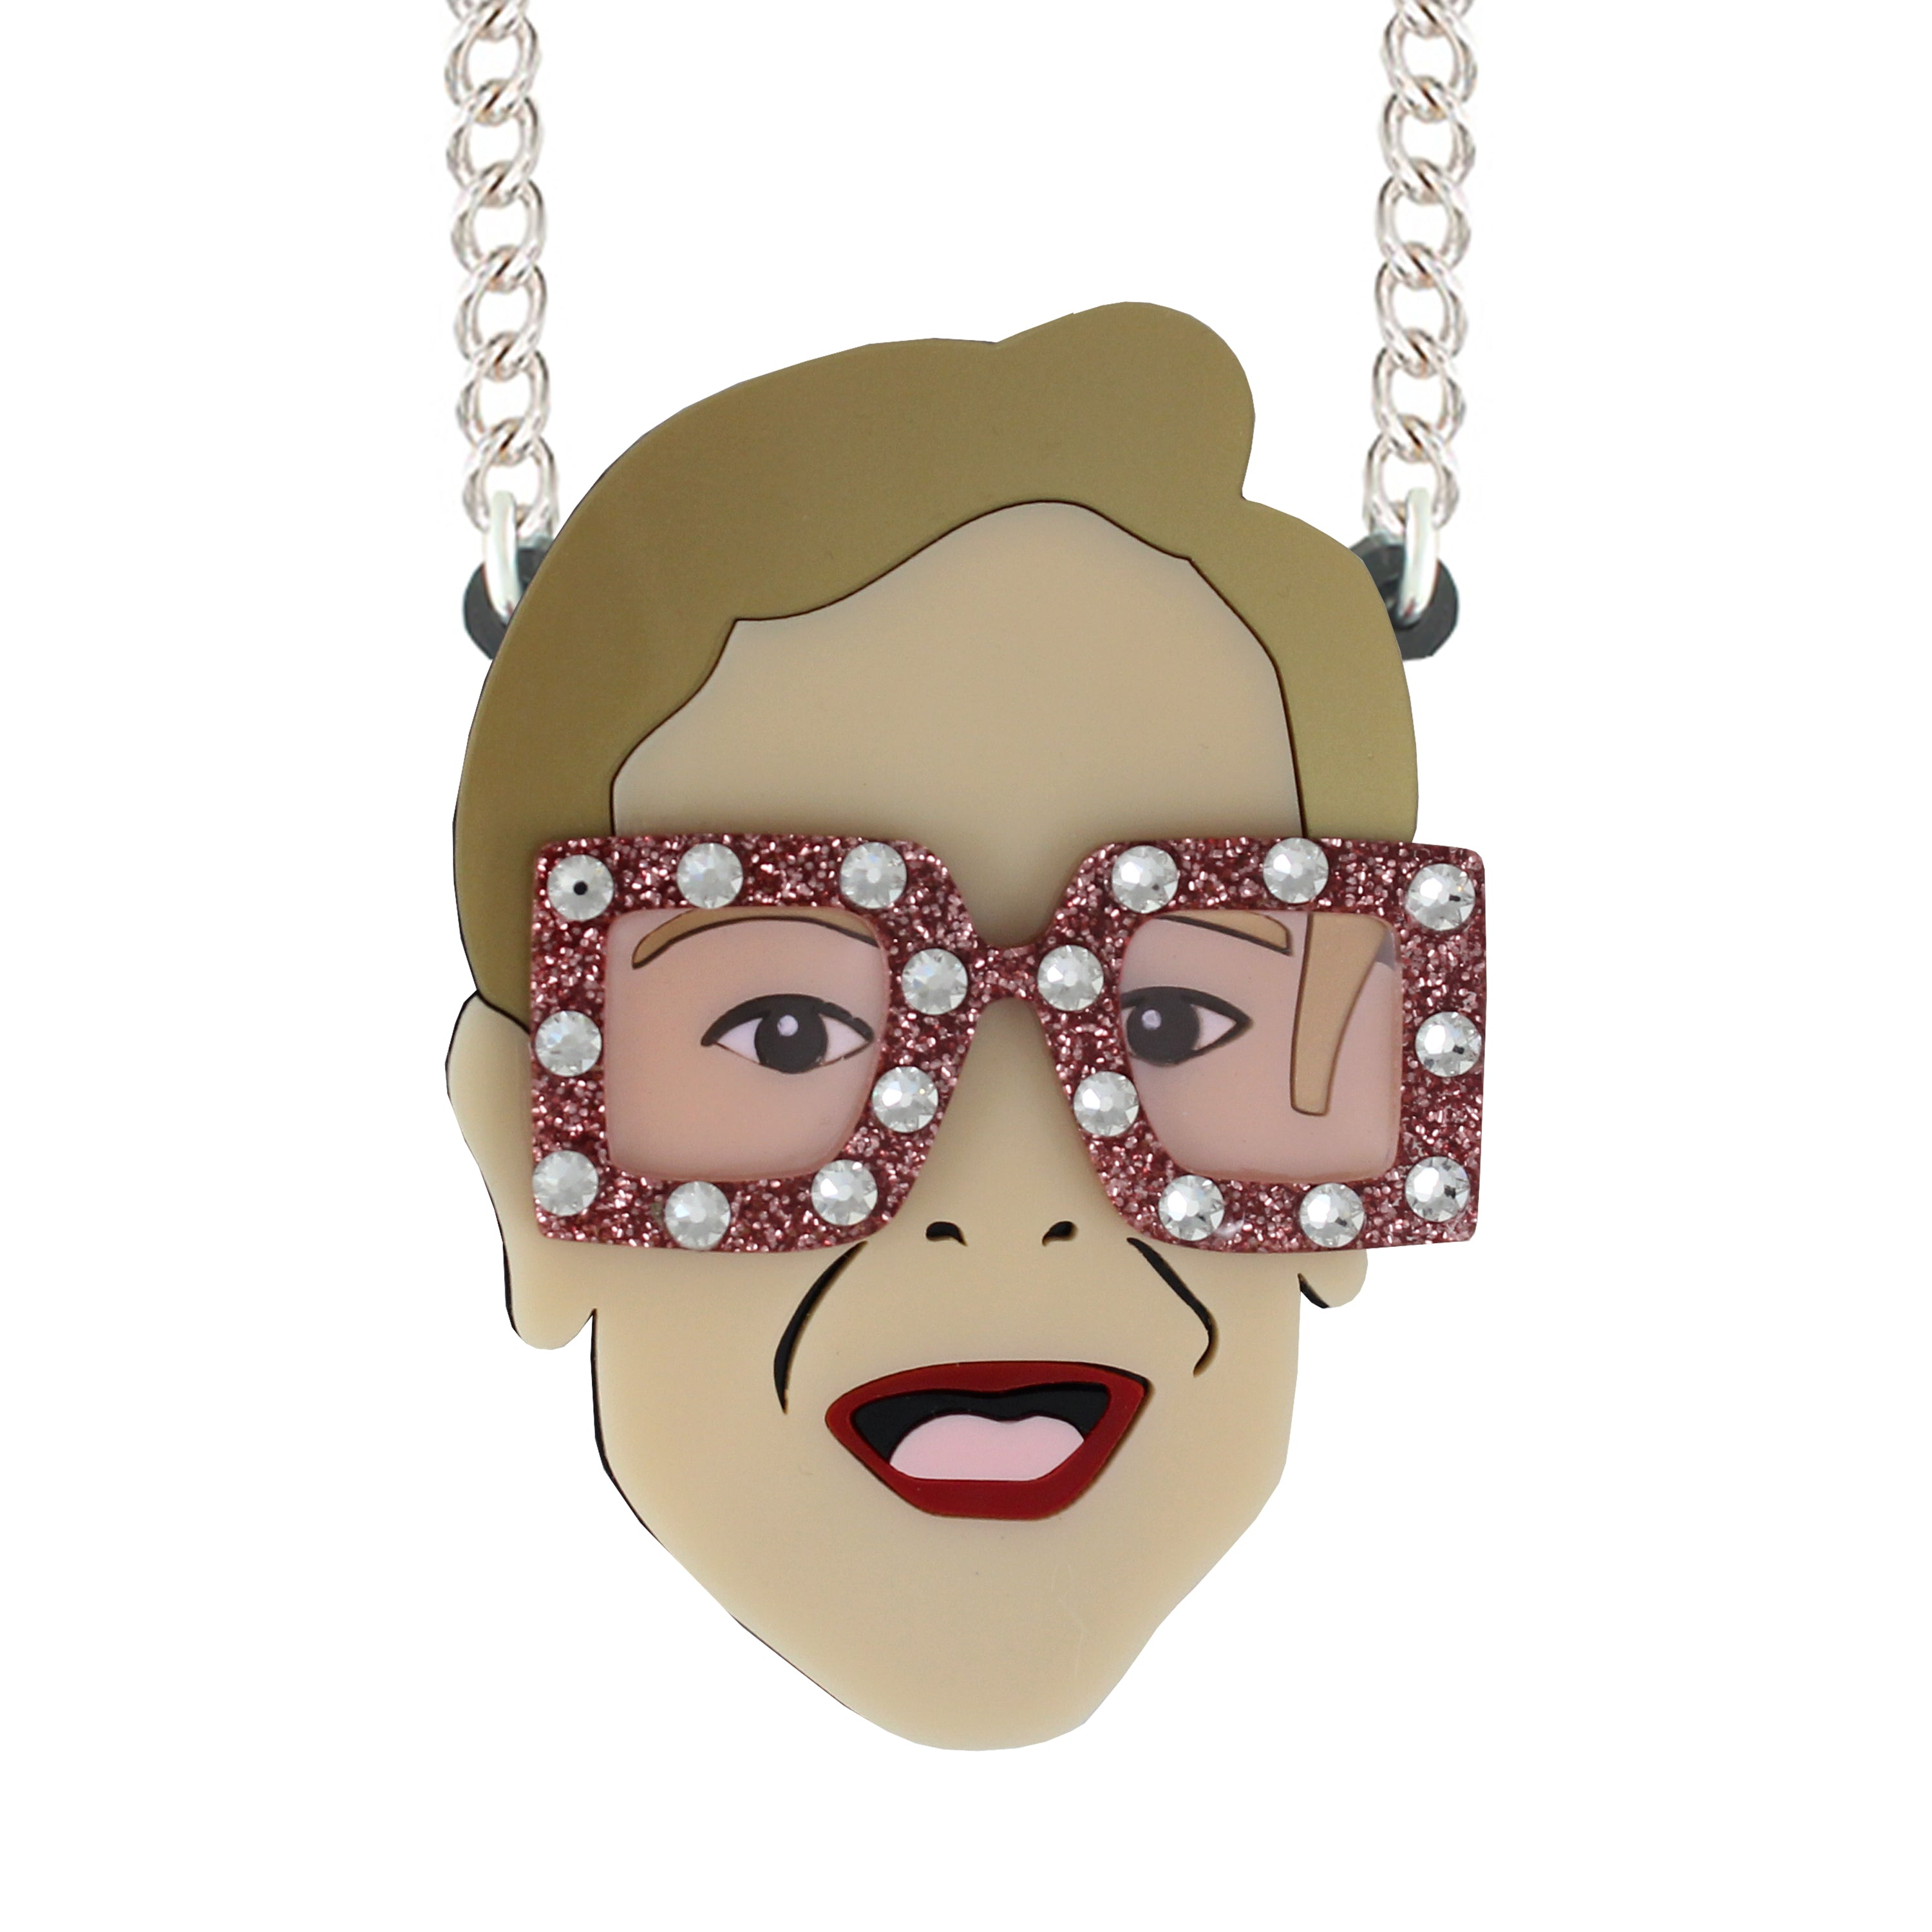 NEW! Elton necklace